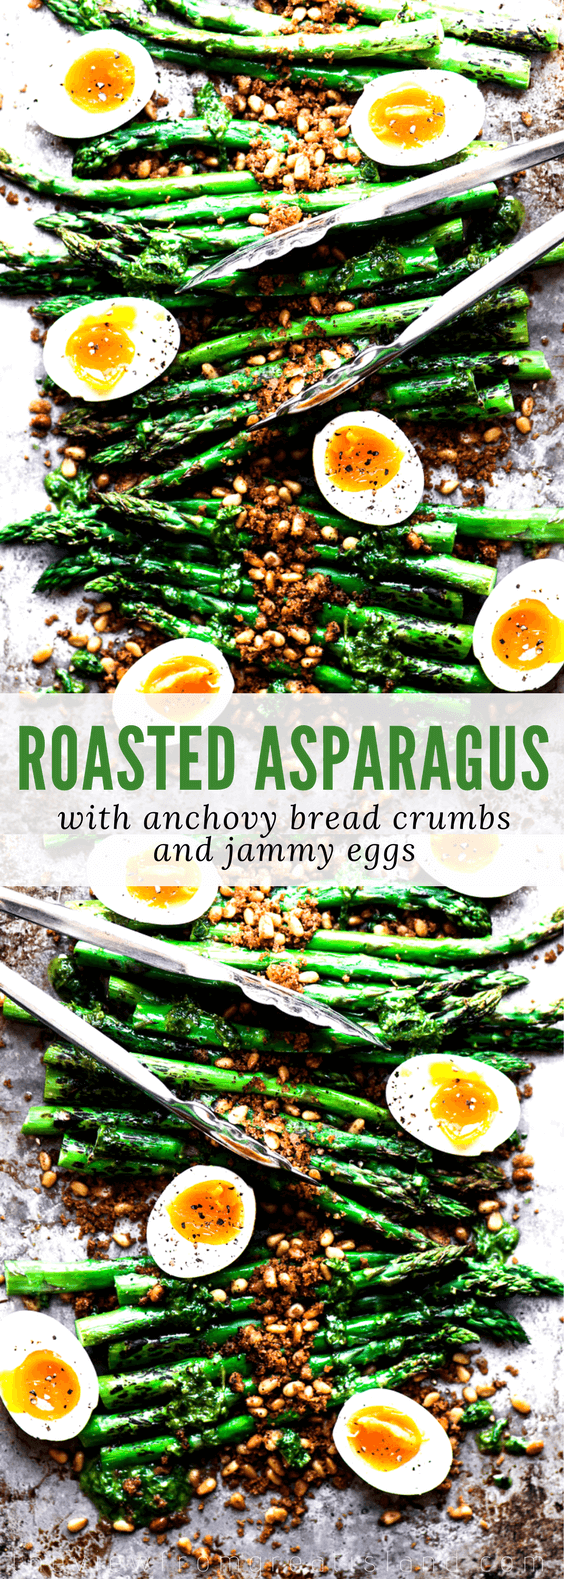 Roasted Asparagus with Crispy Breadcrumbs, Pine Nuts, and Runny Eggs pin